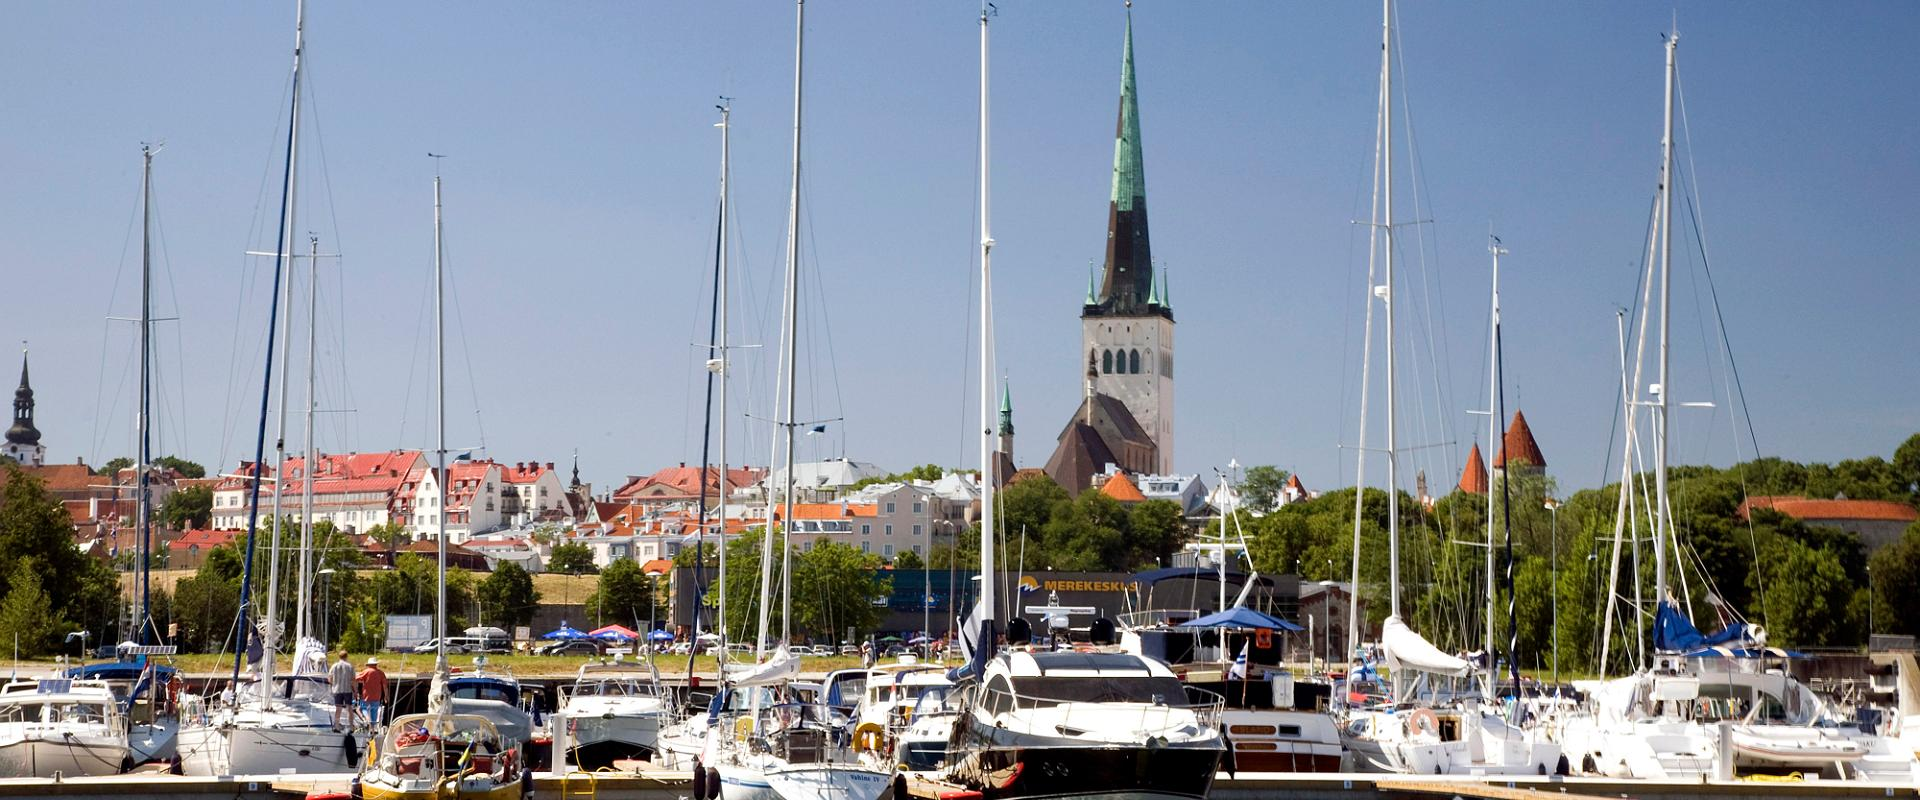 3a94d5dbba8 Tallinn Old Port Yacht Harbour / Old City Marina, Estonia